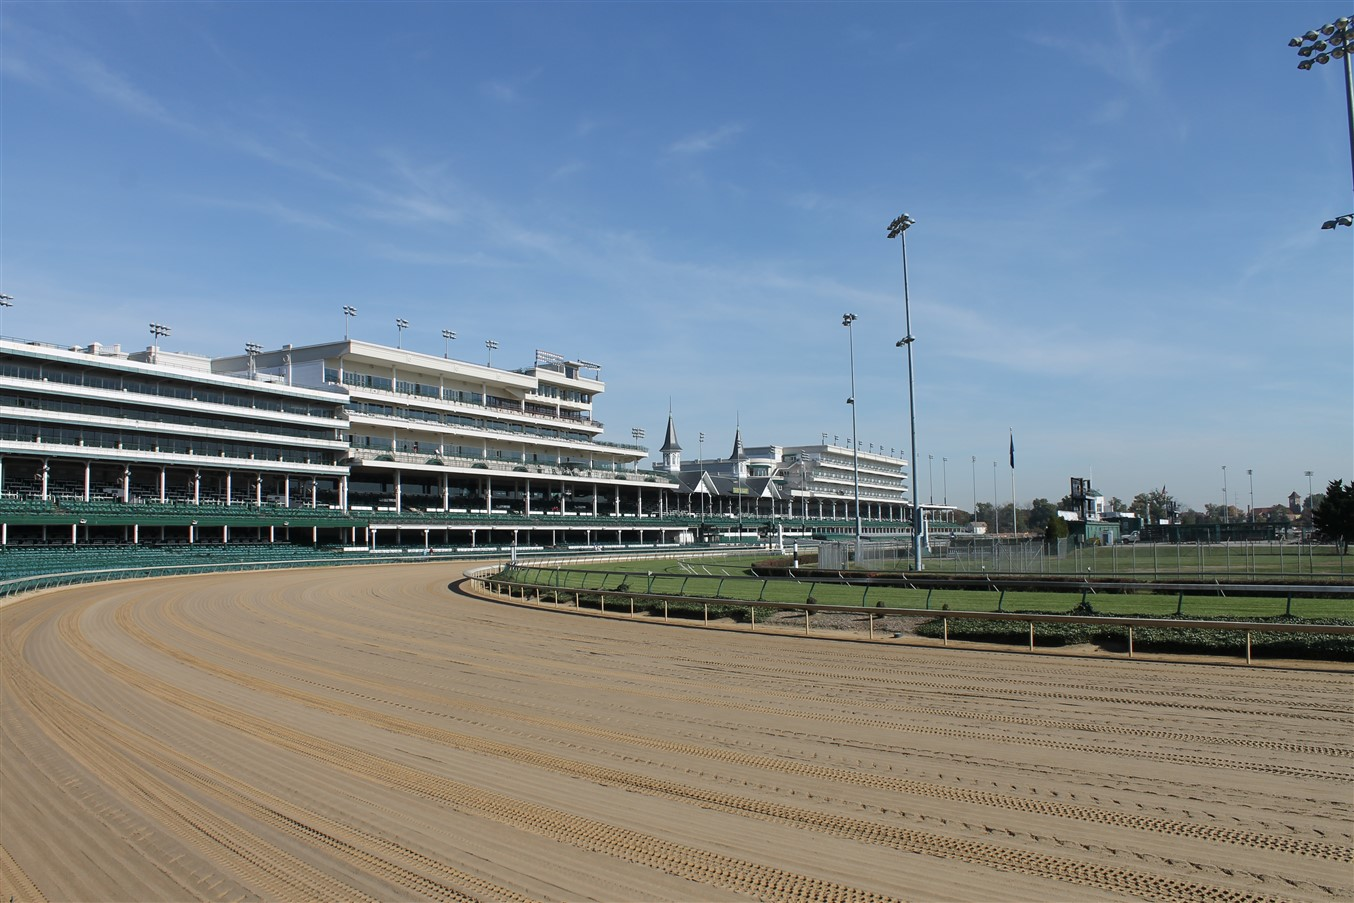 2013 10 27 100 Churchill Downs Louisville.jpg